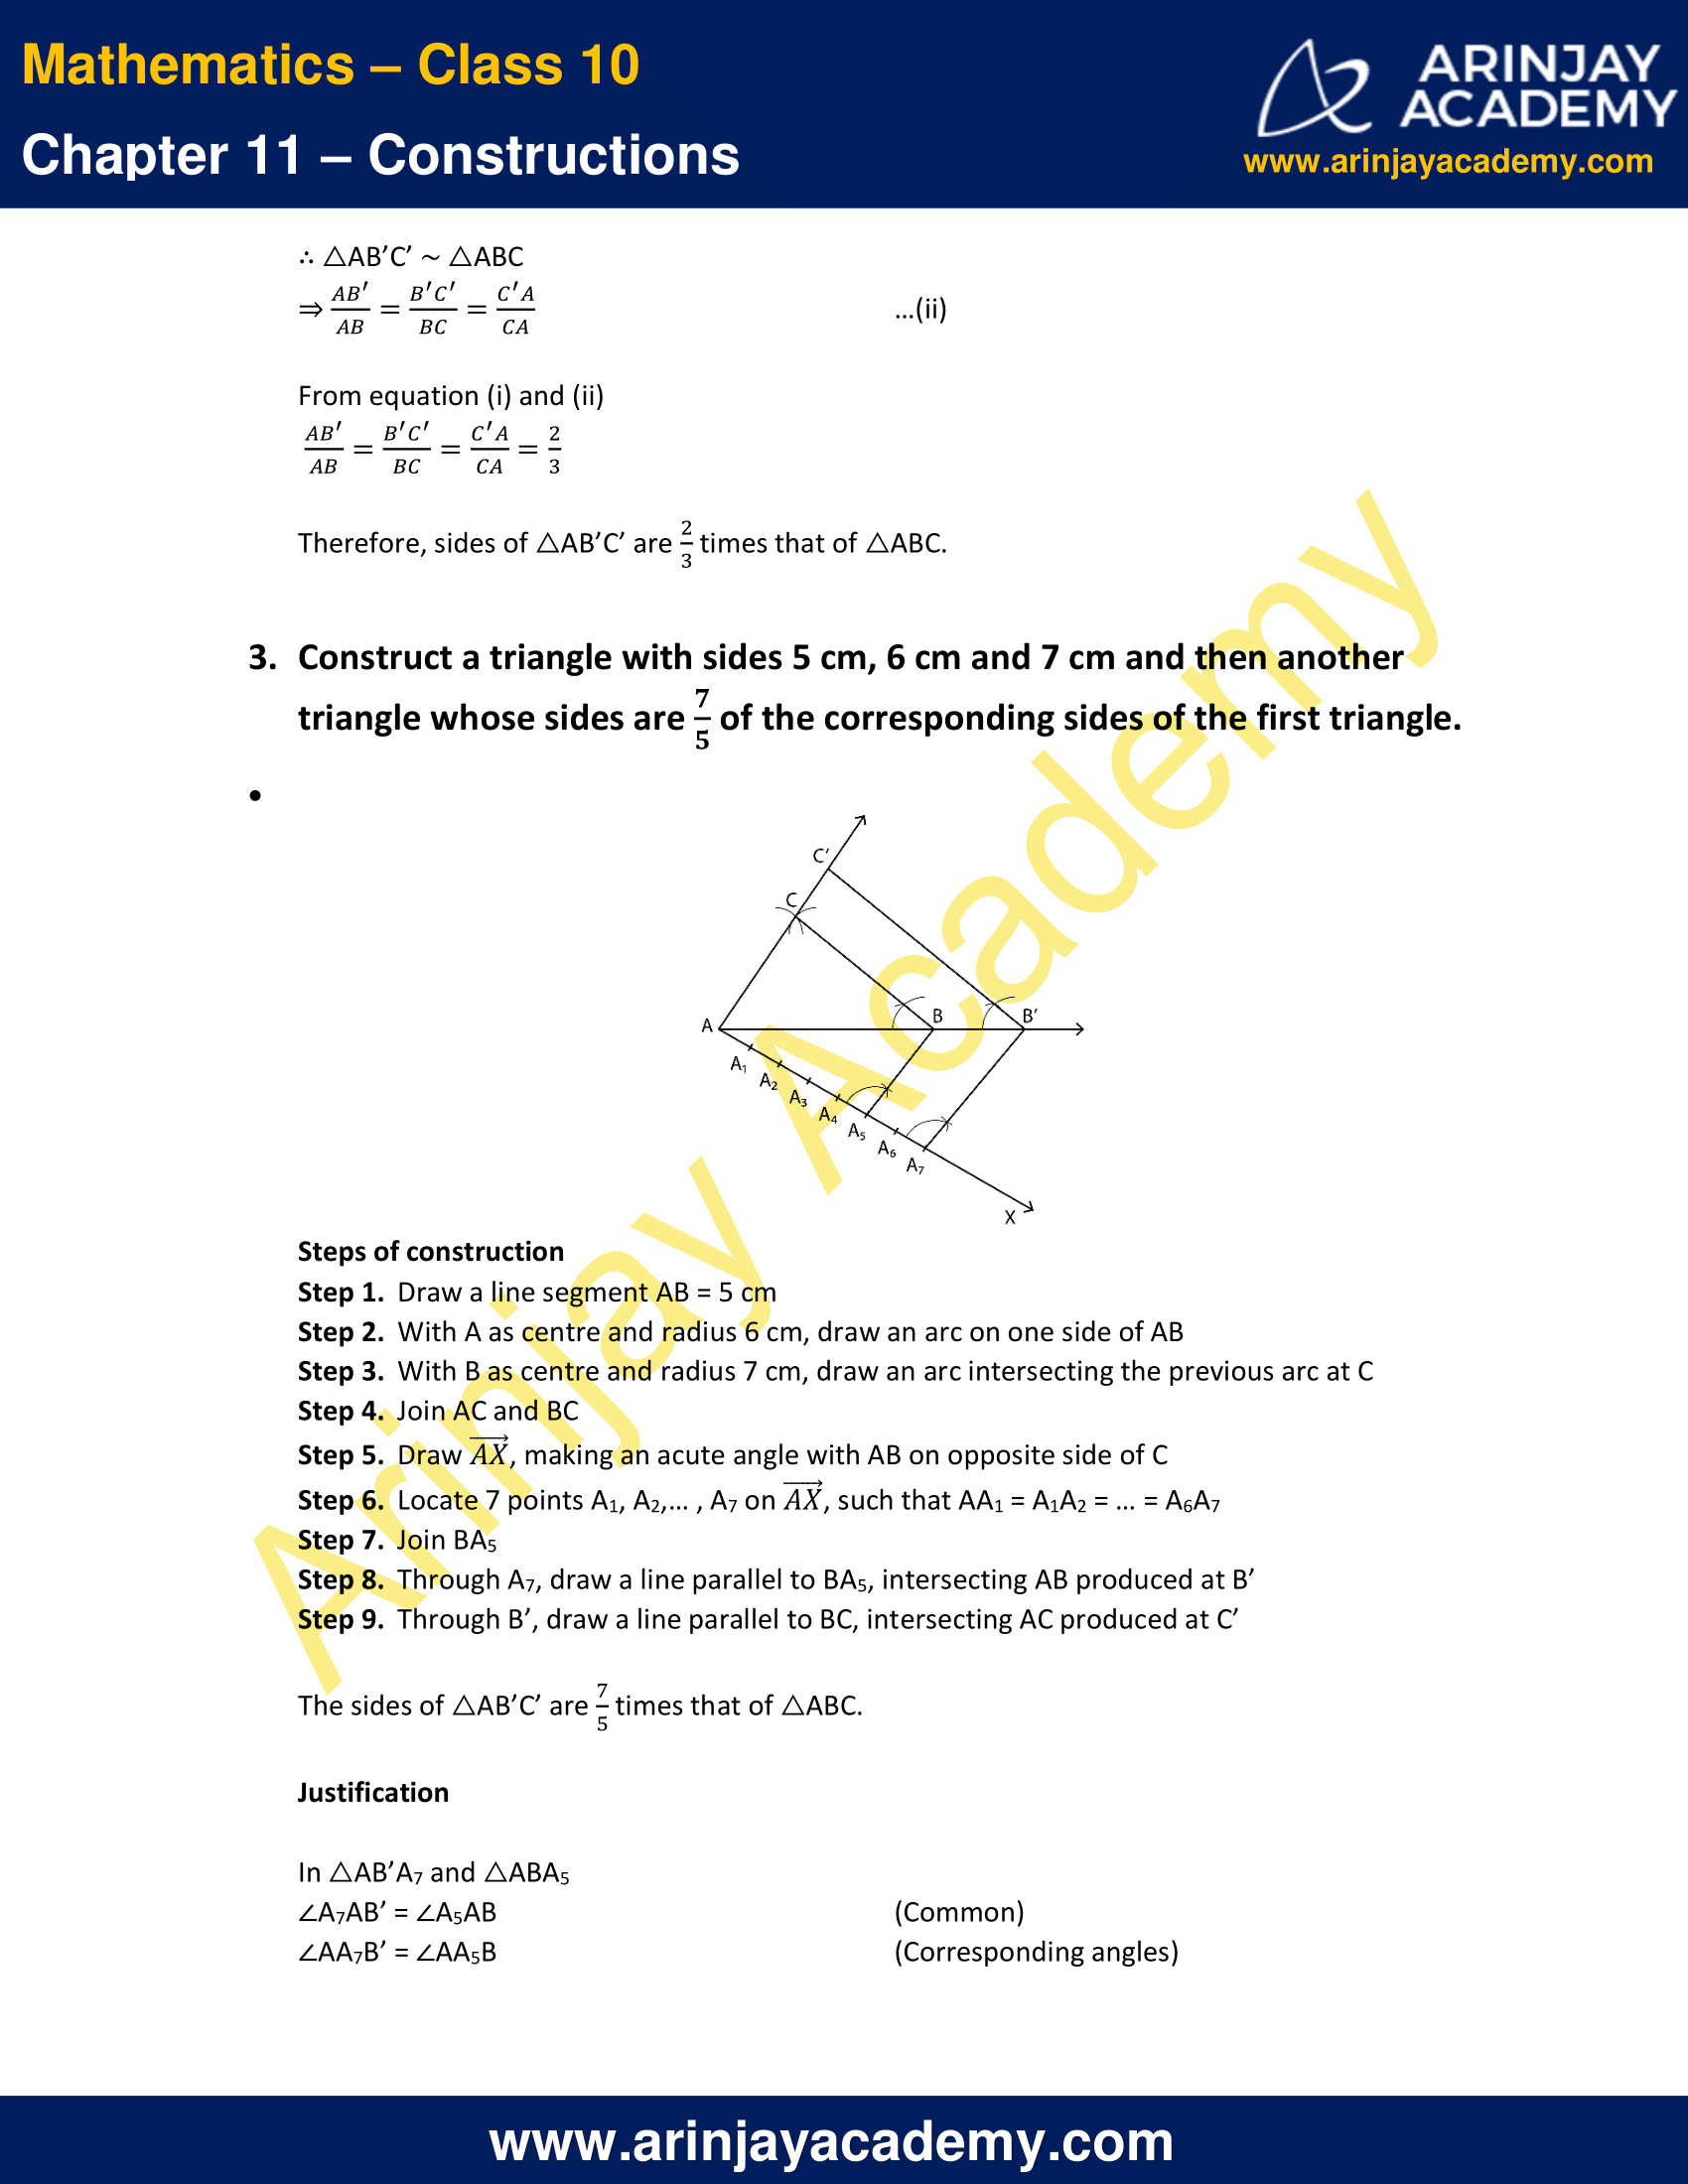 NCERT Solutions For Class 10 Maths Chapter 11 Exercise 11.1 image 3